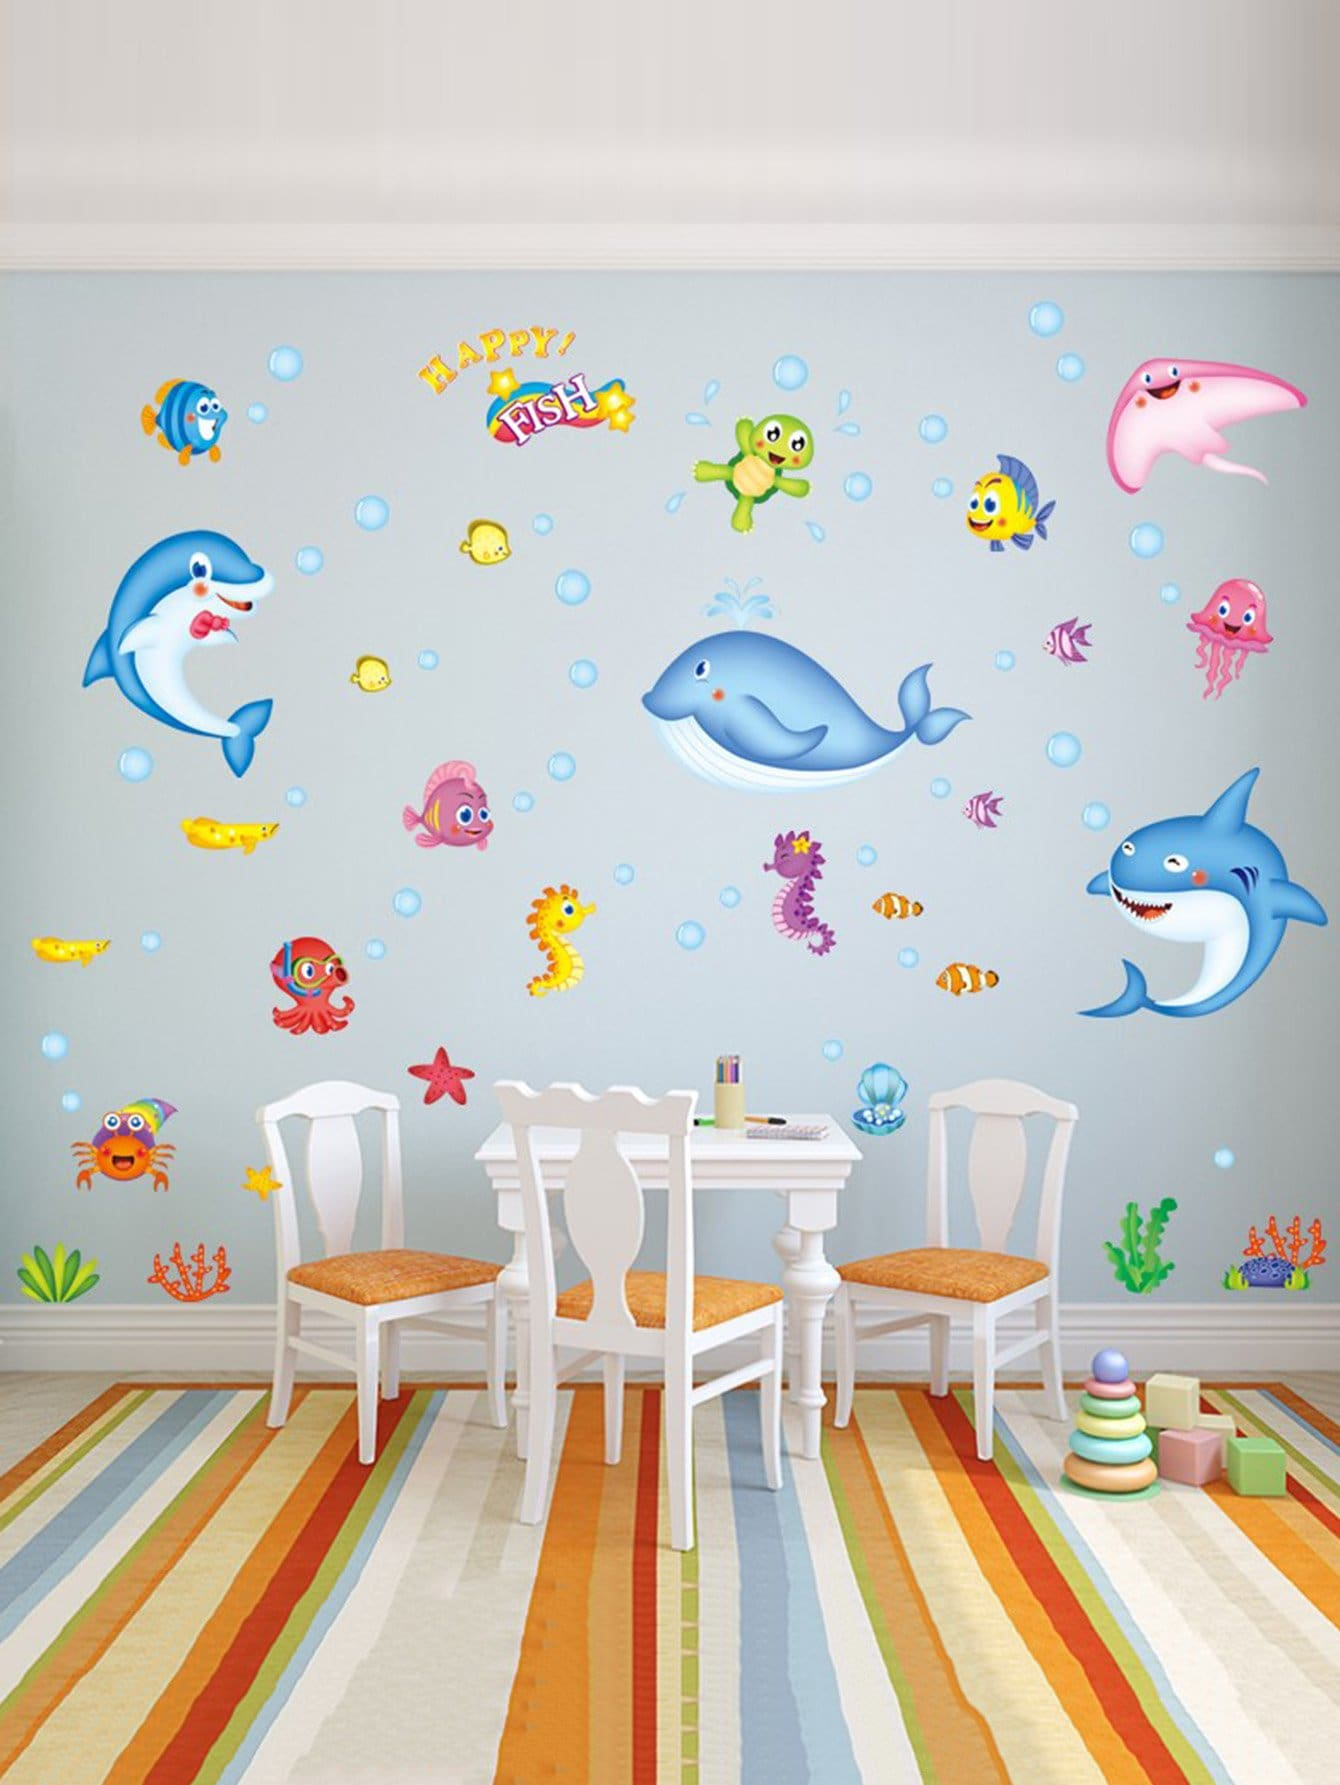 Ocean Fish Wall Sticker 45 pcs pack animal blue whale fish mini paper sticker diary decoration diy scrapbooking label seal sticker stationery